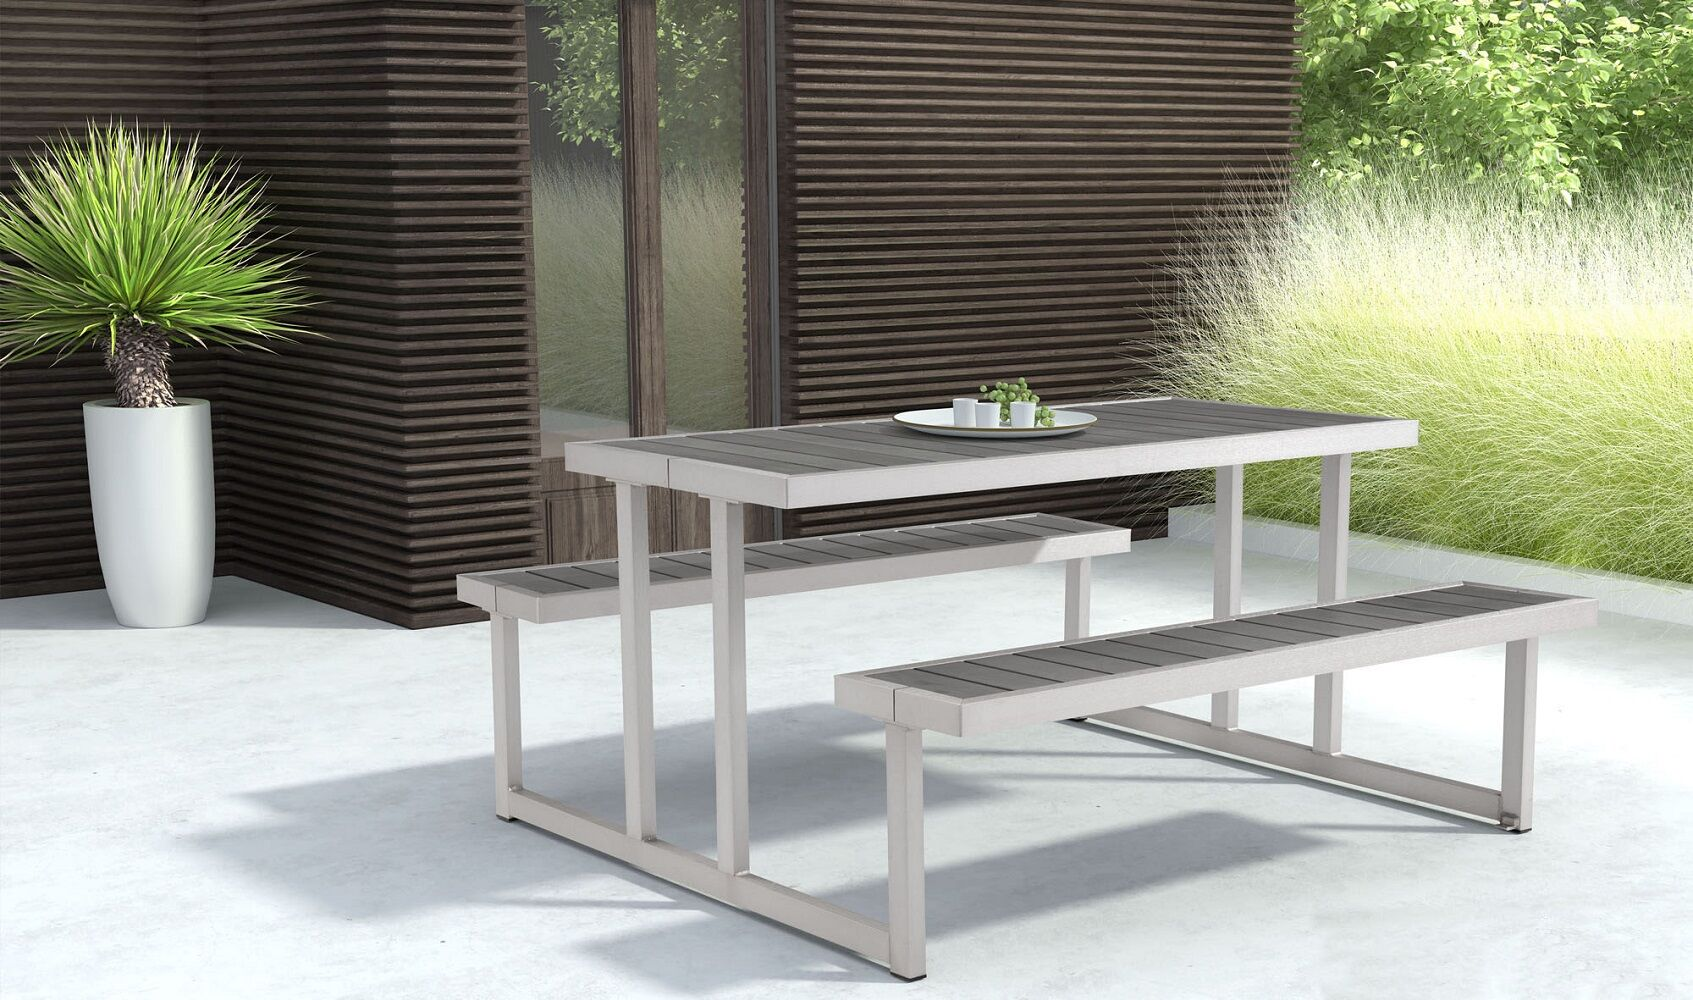 Havel Picnic Table